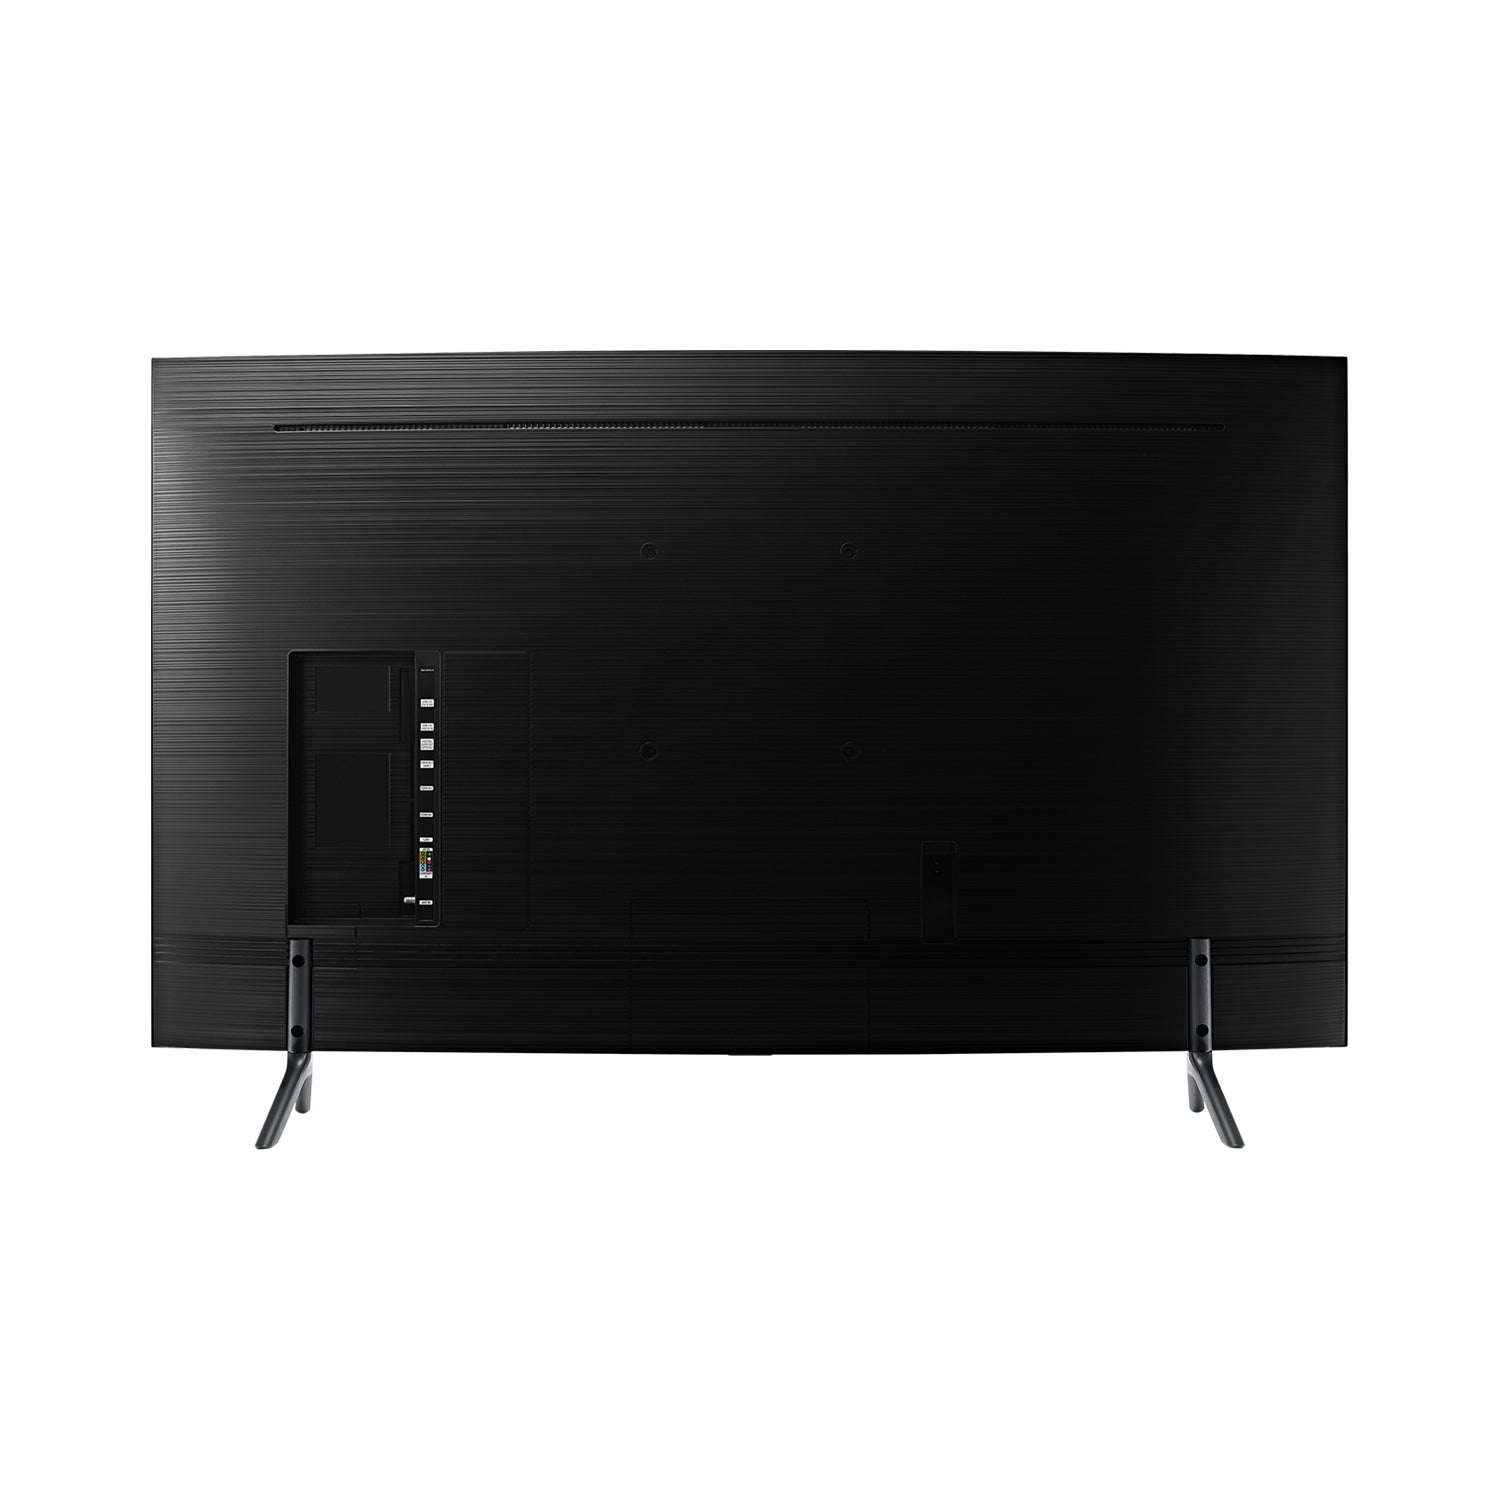 55-inch Curved LED 4K UHD Smart TV